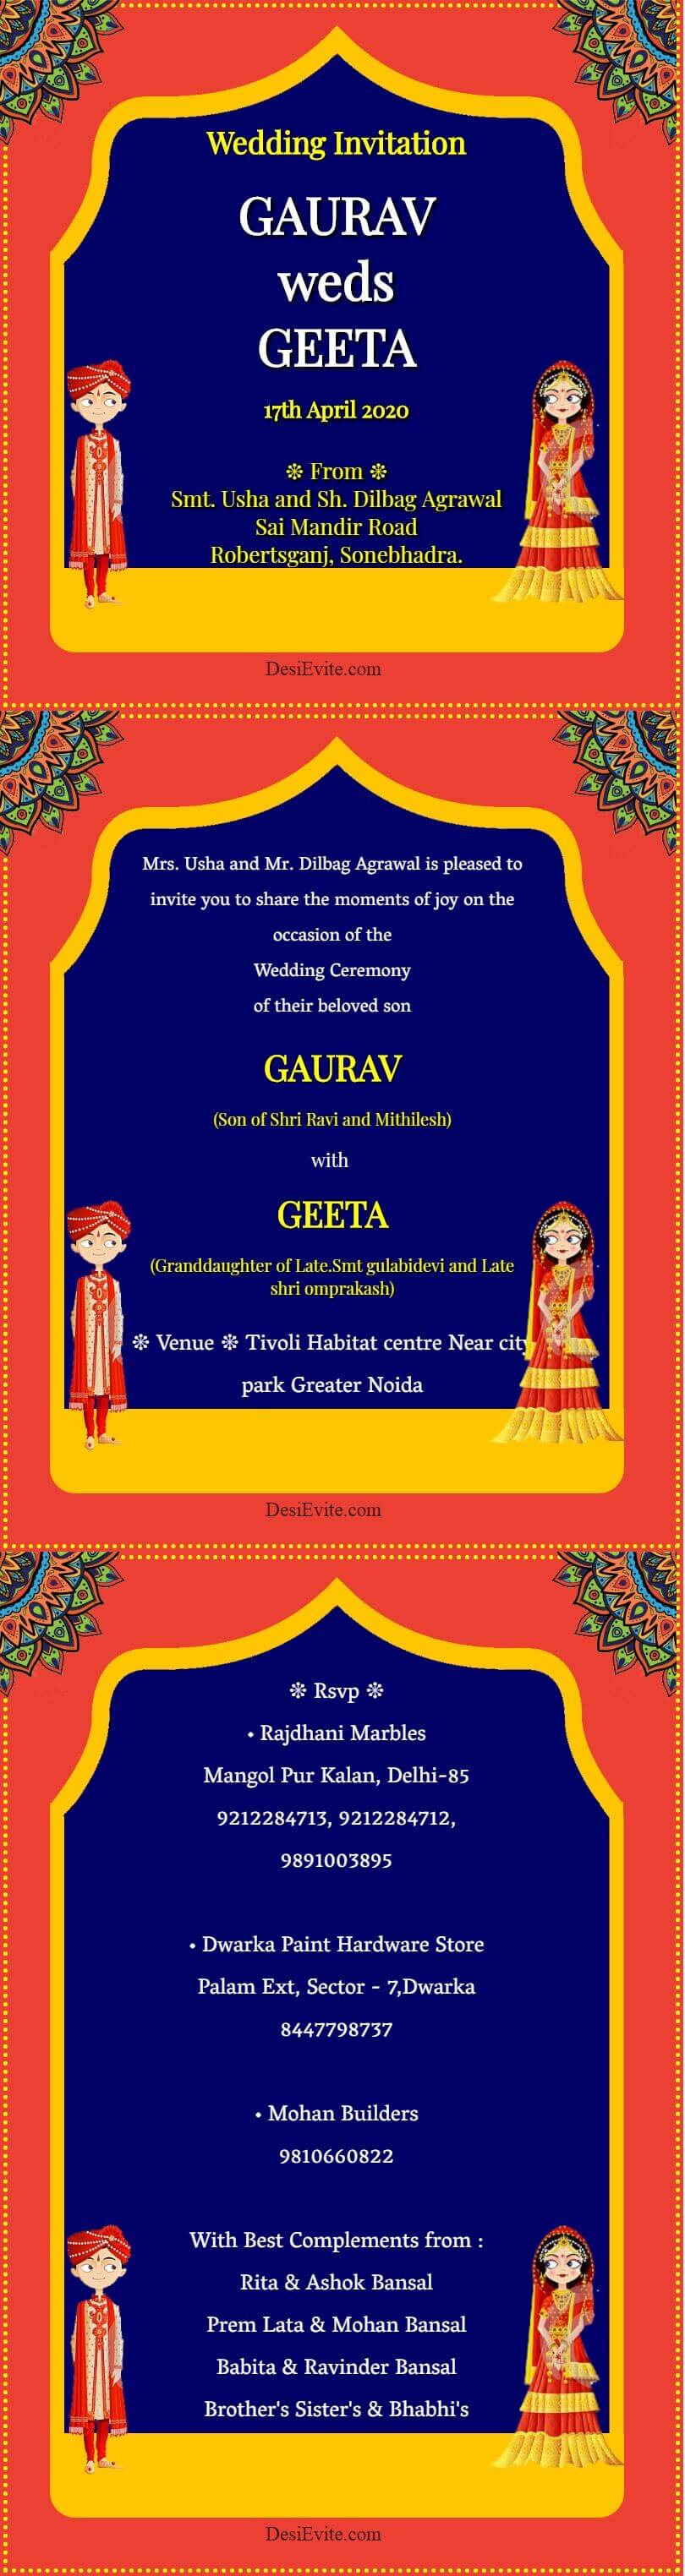 wedding invitation card with 3 pages template 147